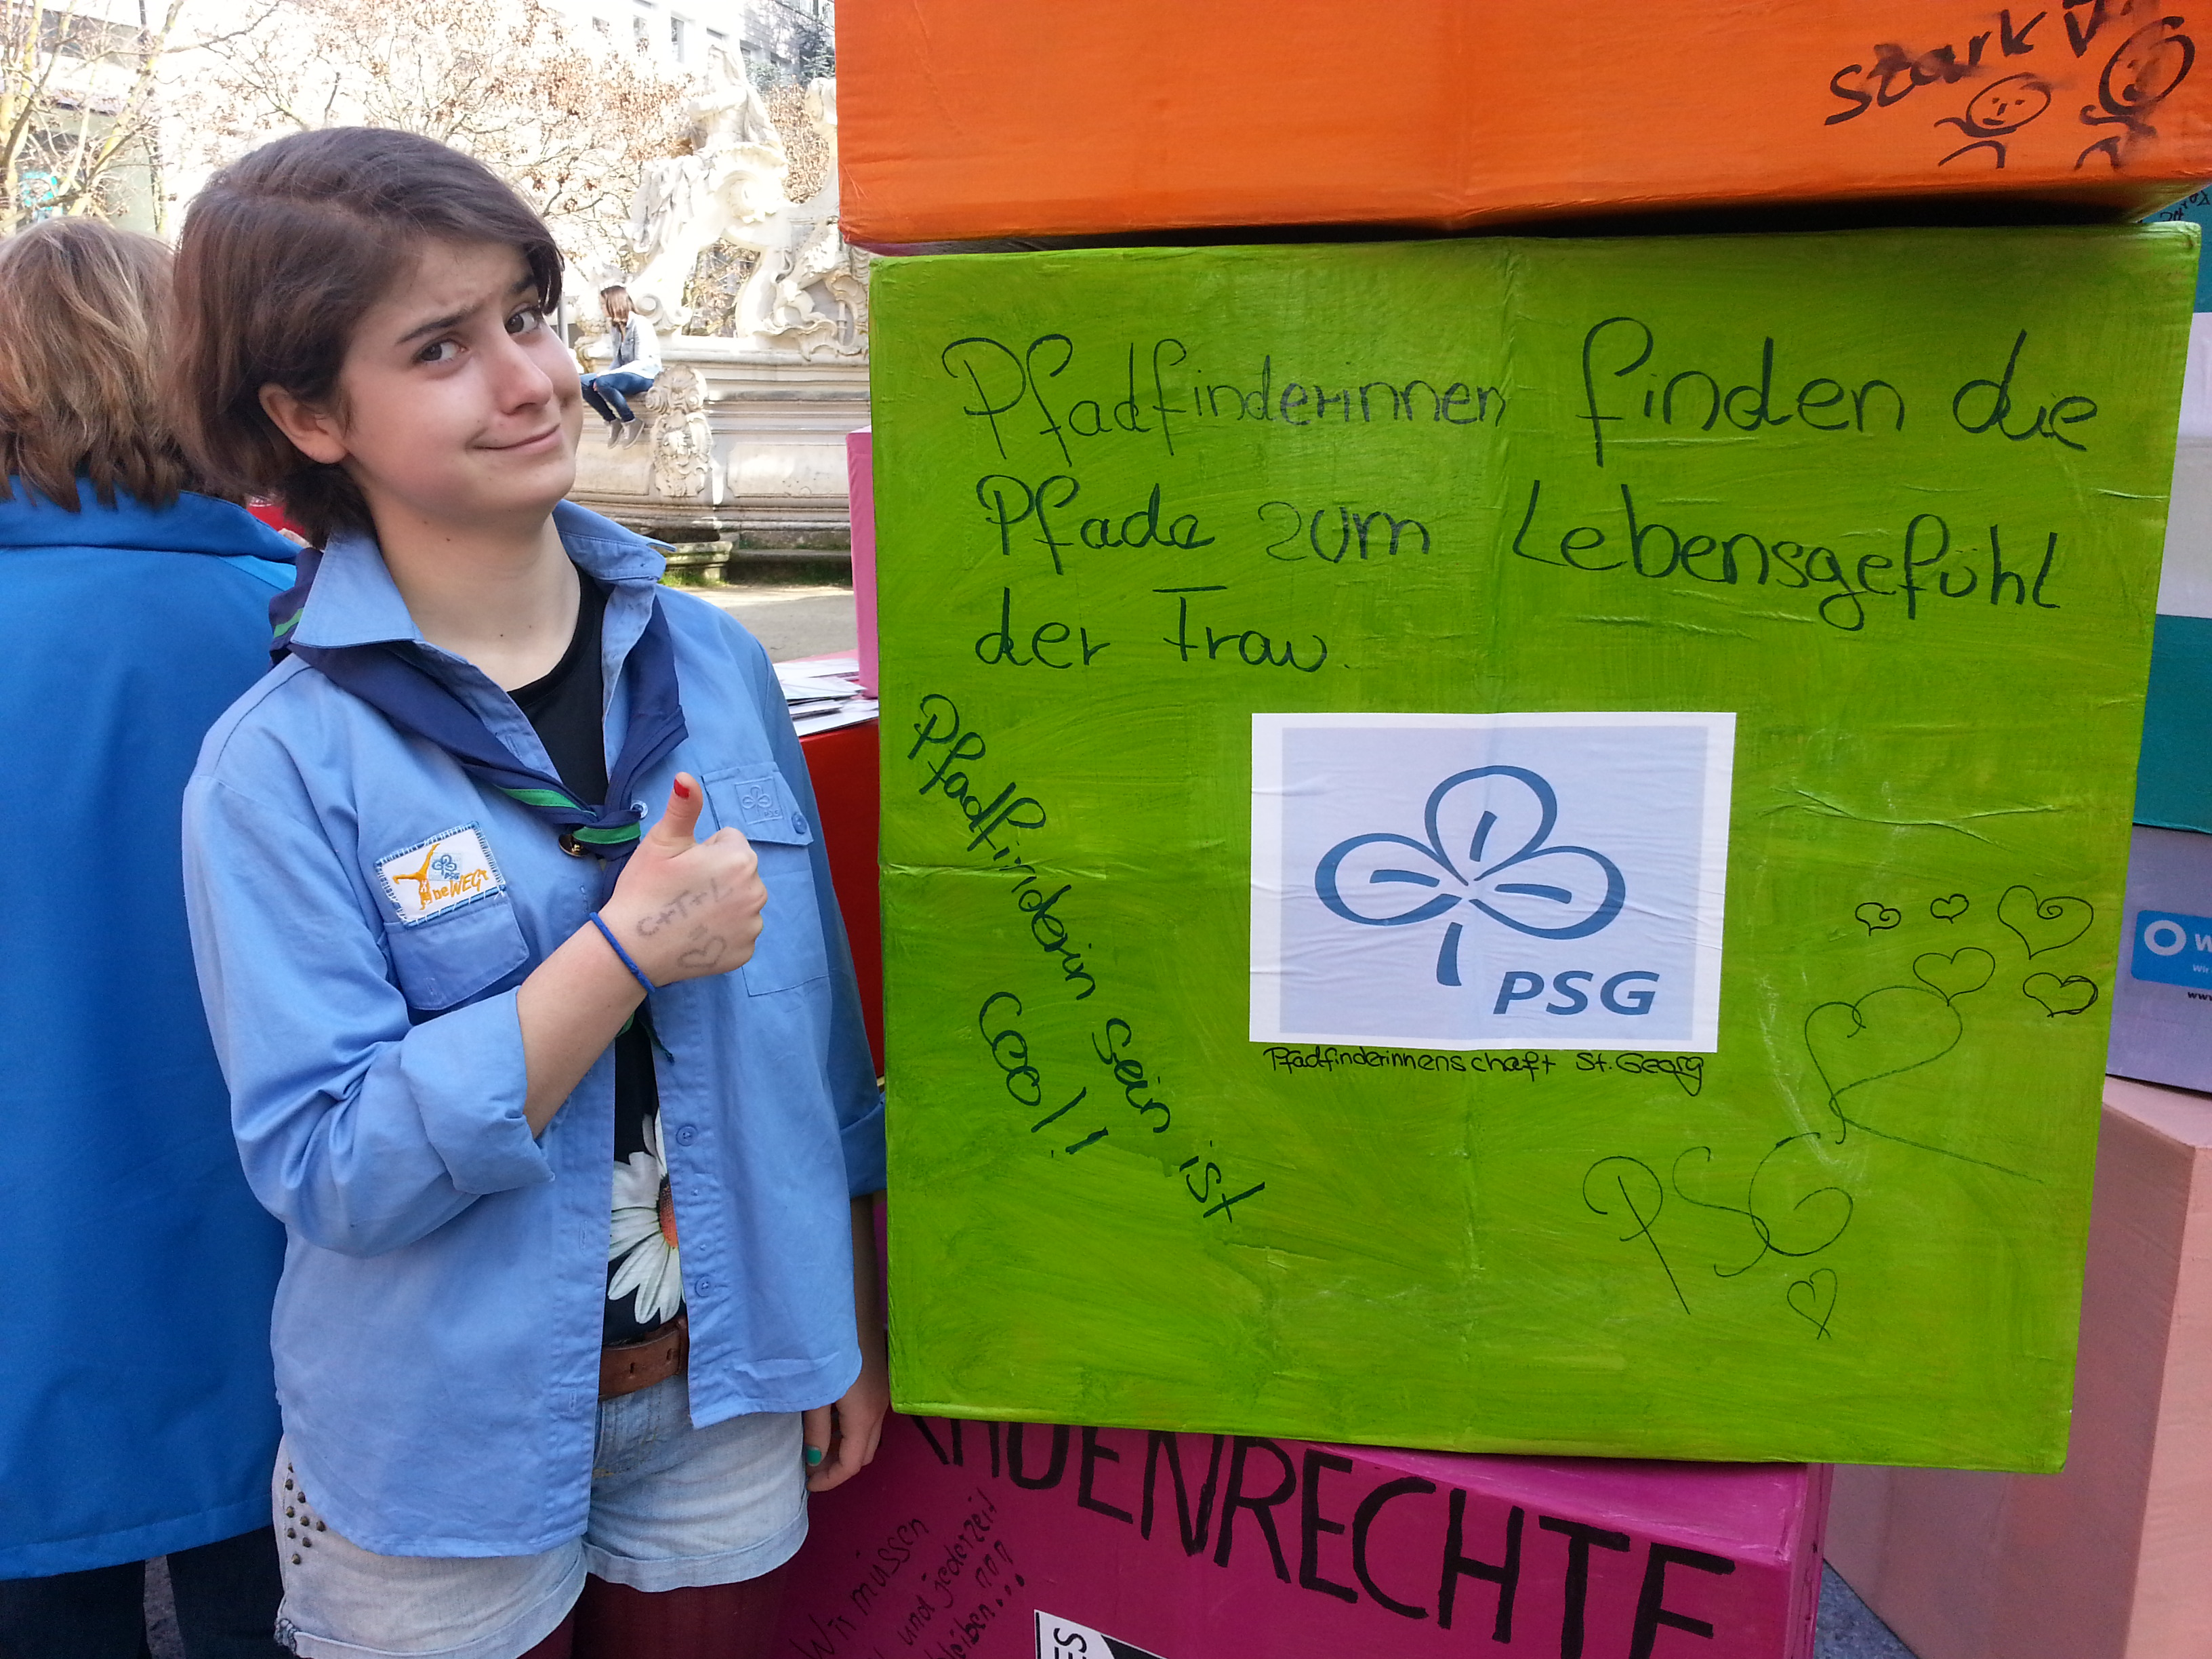 tl_files/psg_trier/fotogalerie/dioezesanverband/Frauentag 08.03.14/002- Frauentag PSG Wuerfel mit Tabea.jpg